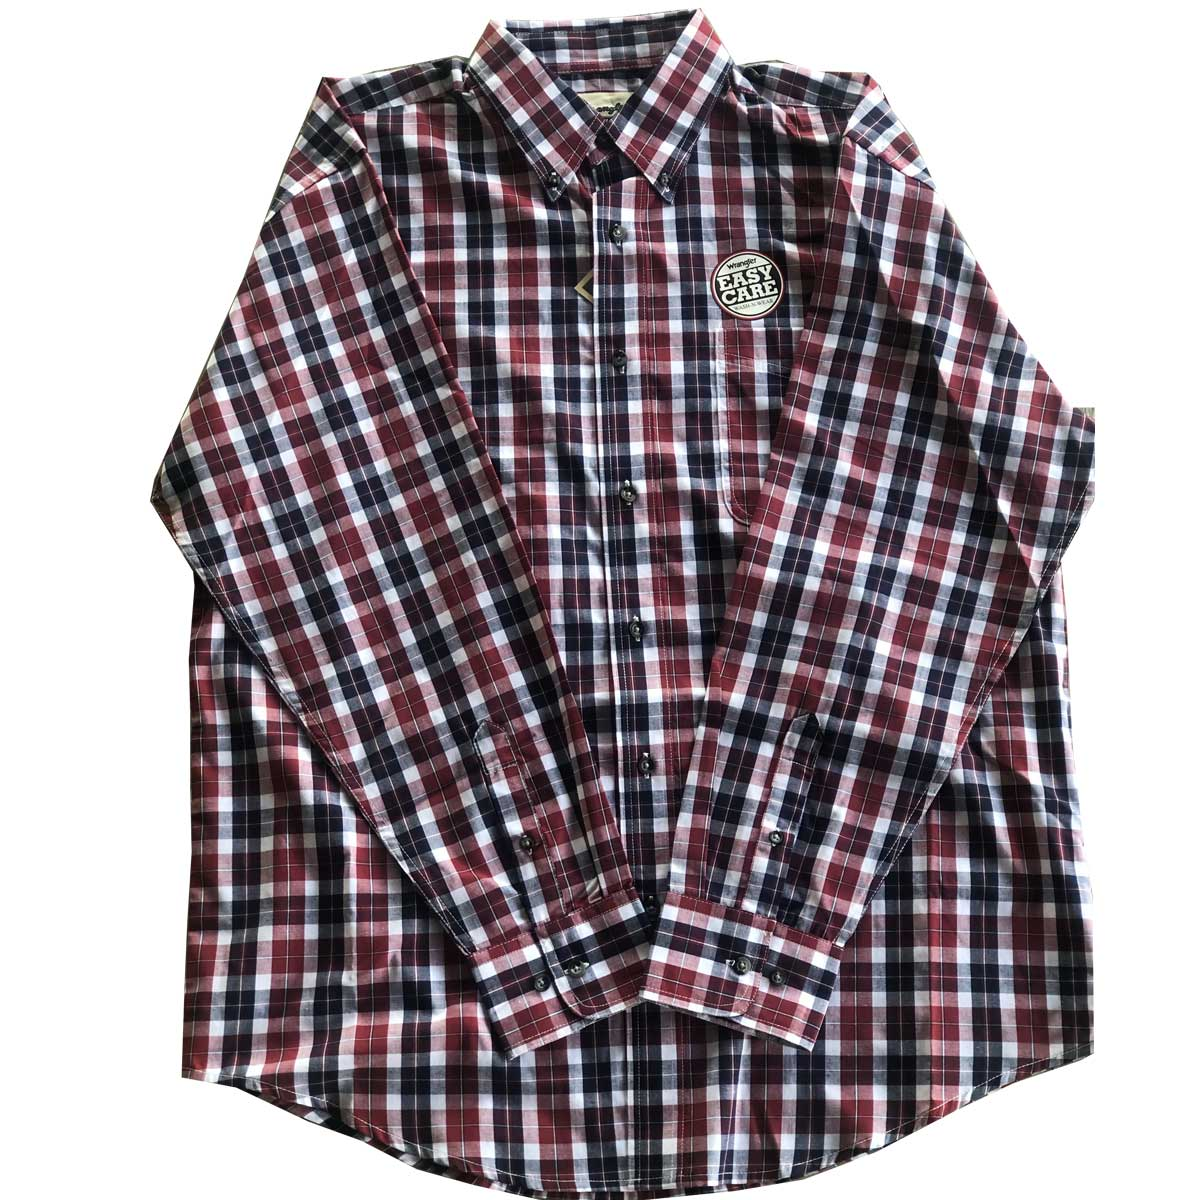 Wrangler Men's Long Sleeve Plaid Button Down Shirt - Red/Black